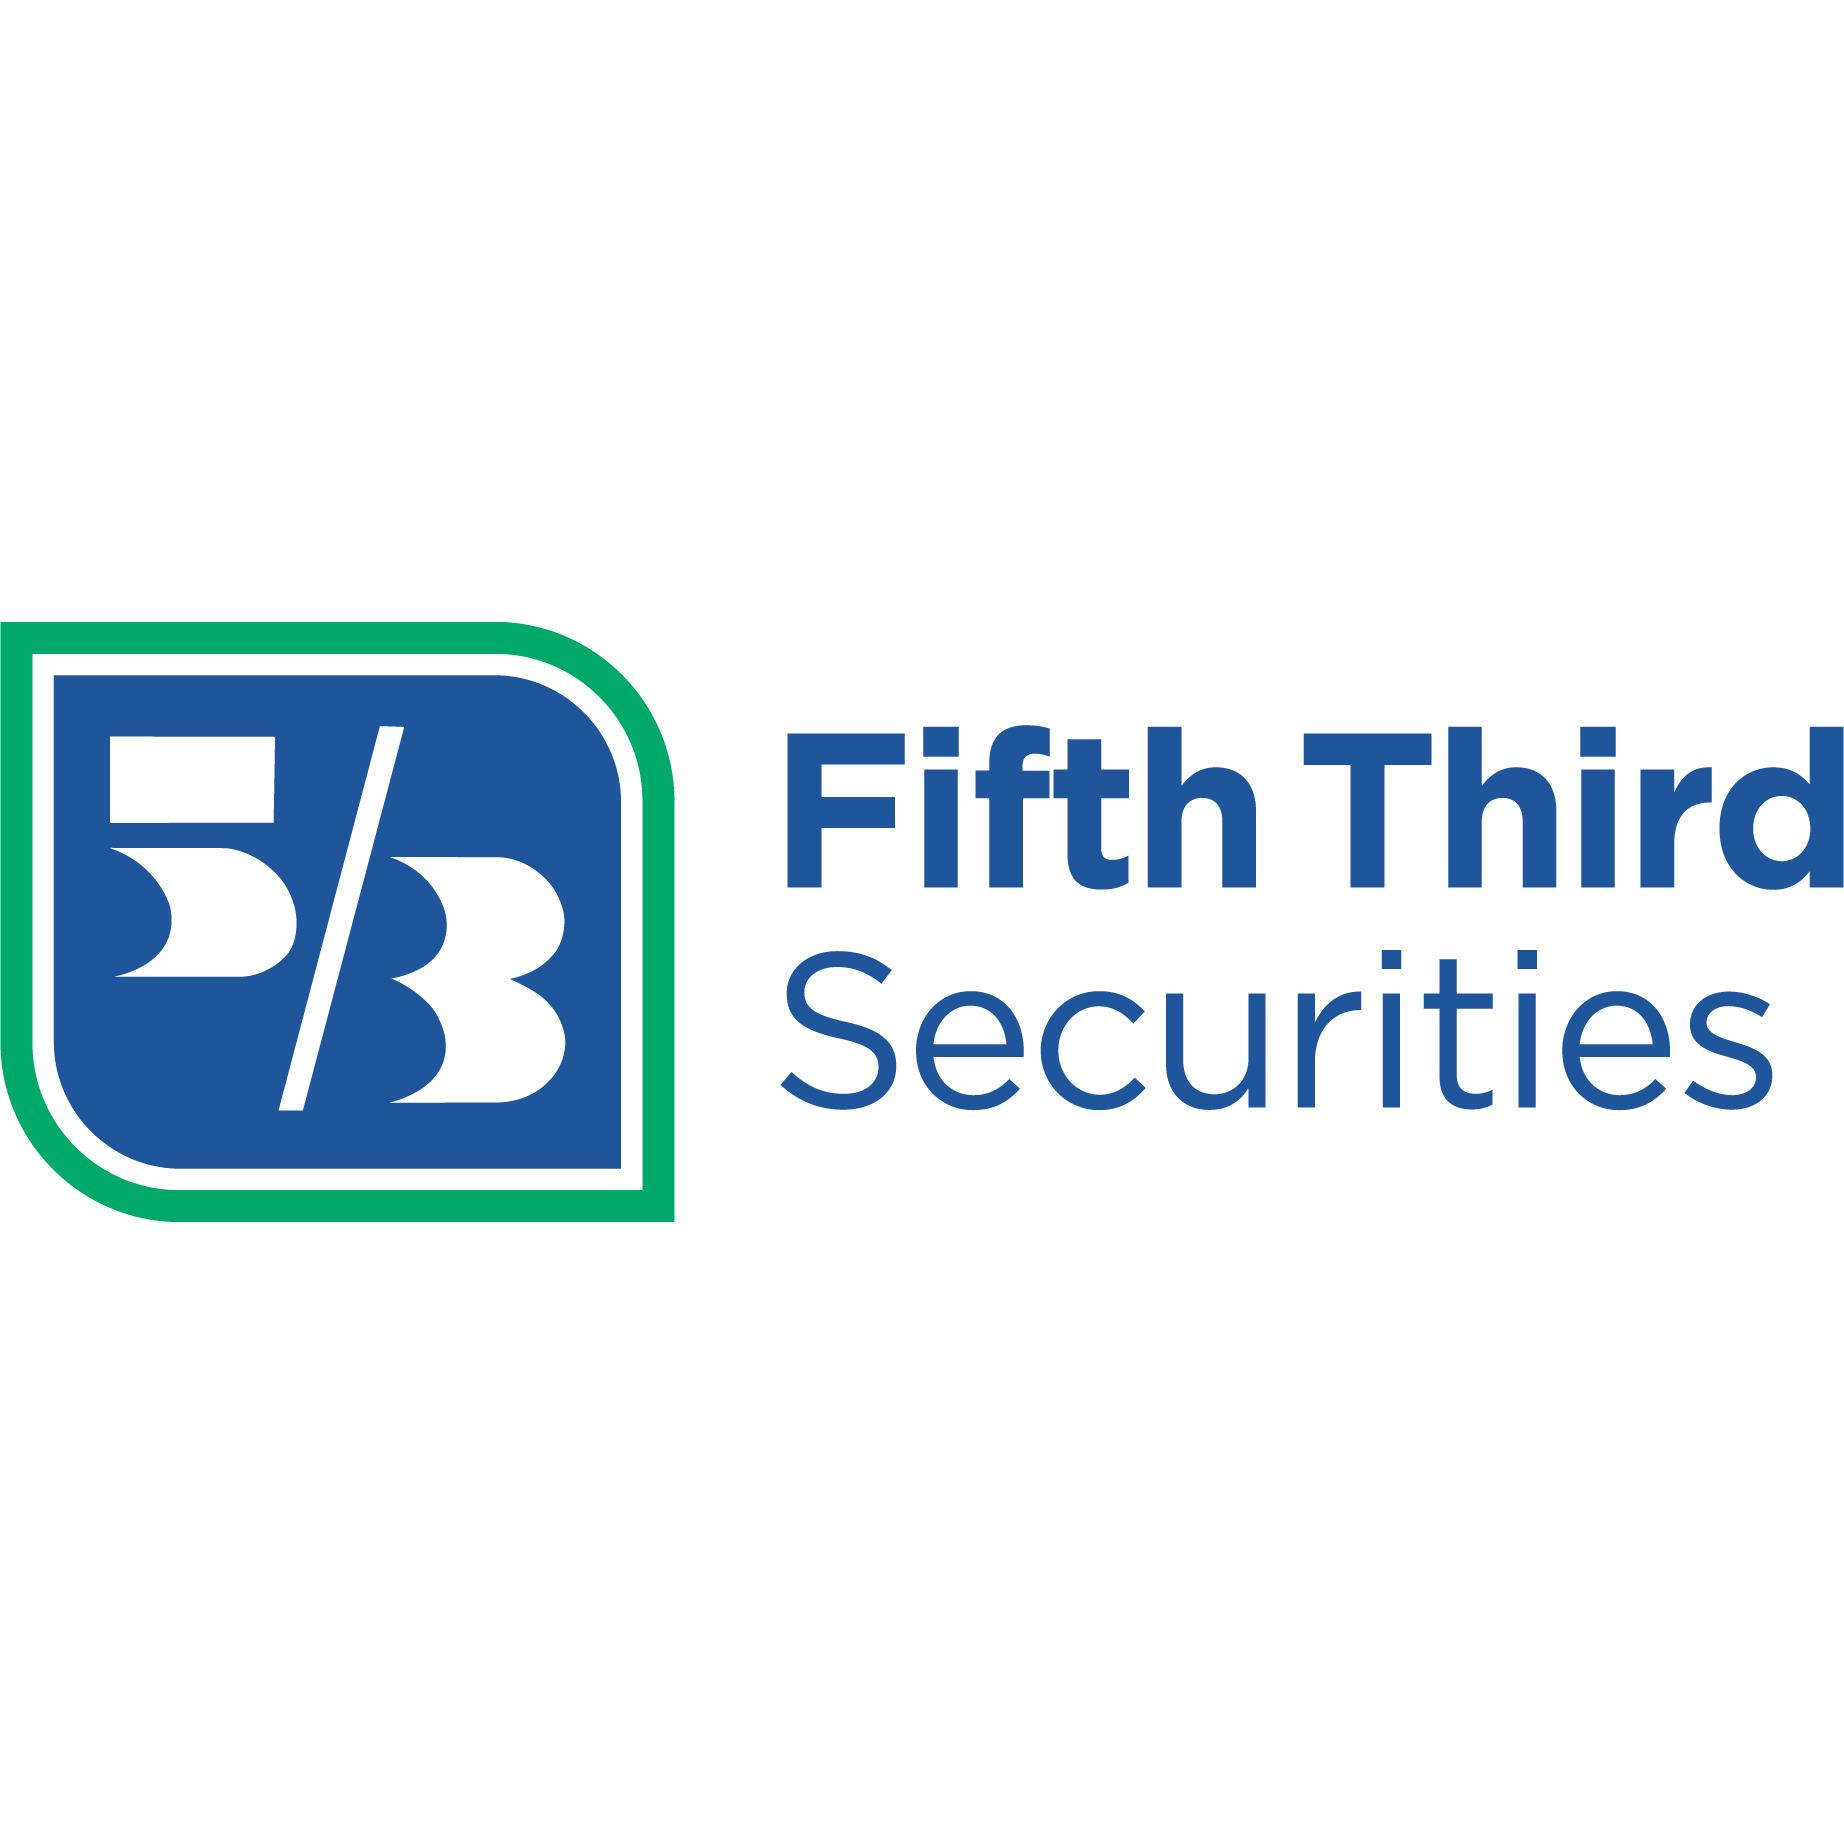 Fifth Third Securities - Wendell Bunch